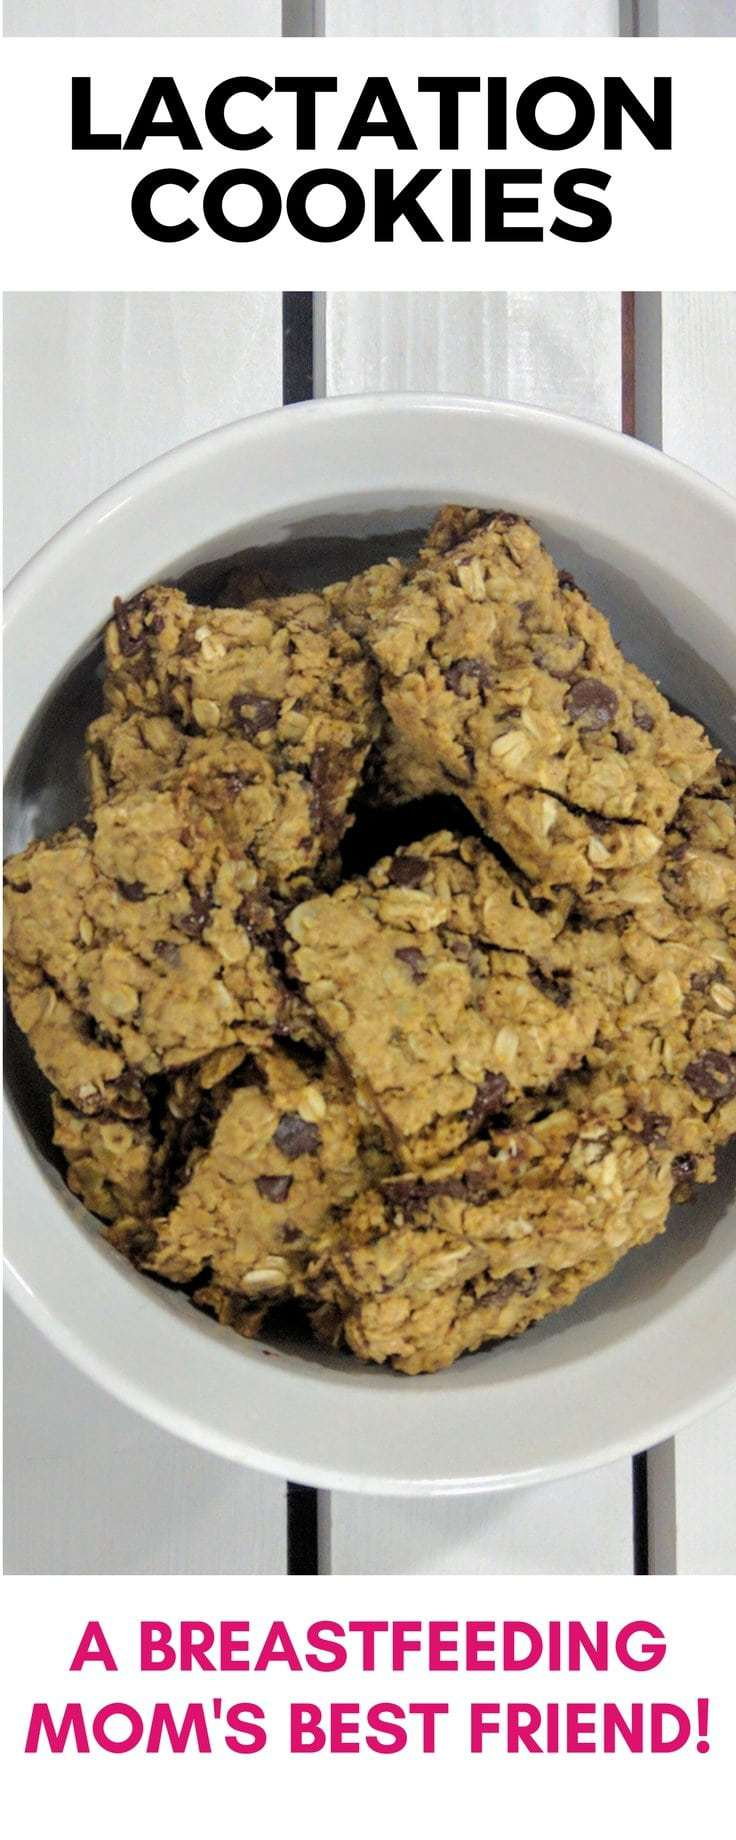 Increase milk supply foods don't have to taste bad! You will love this lactation cookie recipe for low milk supply in moms who are breastfeeding! Easy Lactation Cookies Recipe!